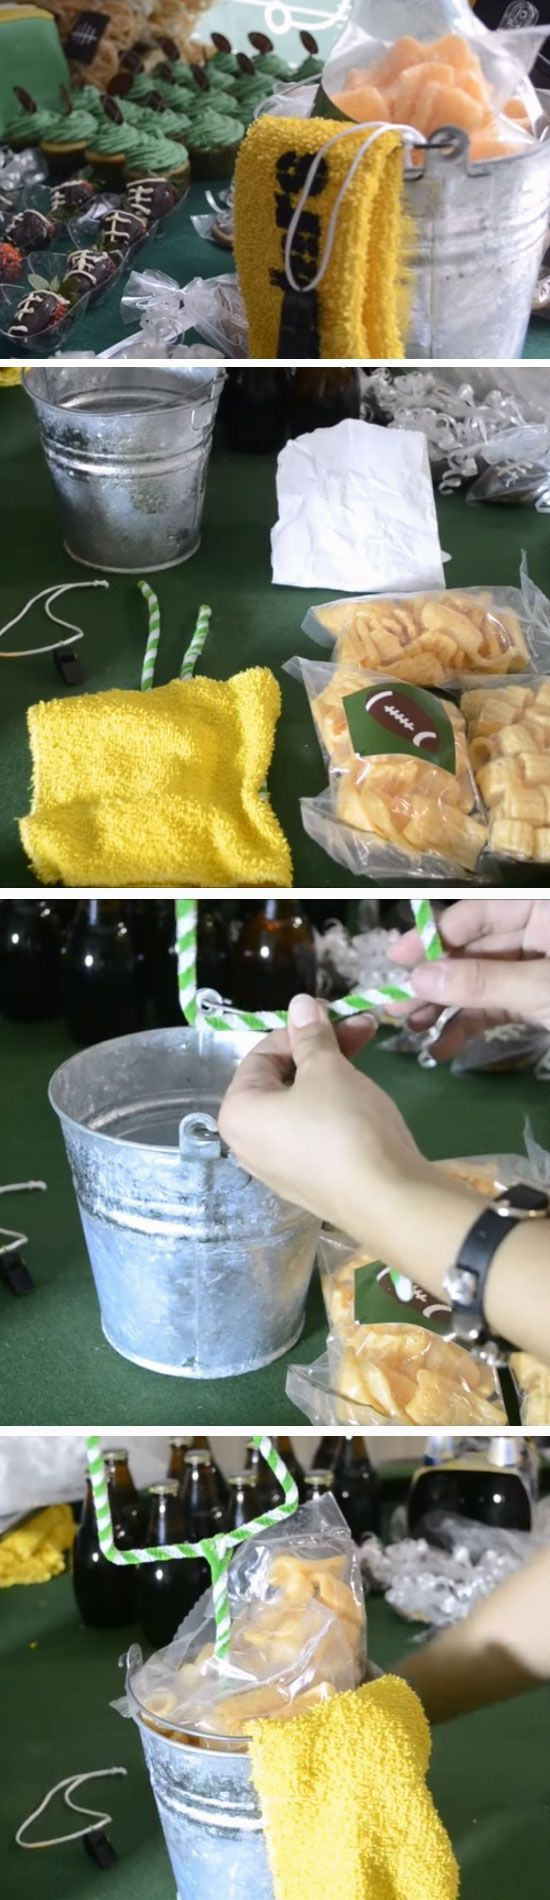 17 Easy DIY Super Bowl Party Decorations Ideas,  #Bowl #Decorations #DIY #Easy #ideas #Party …